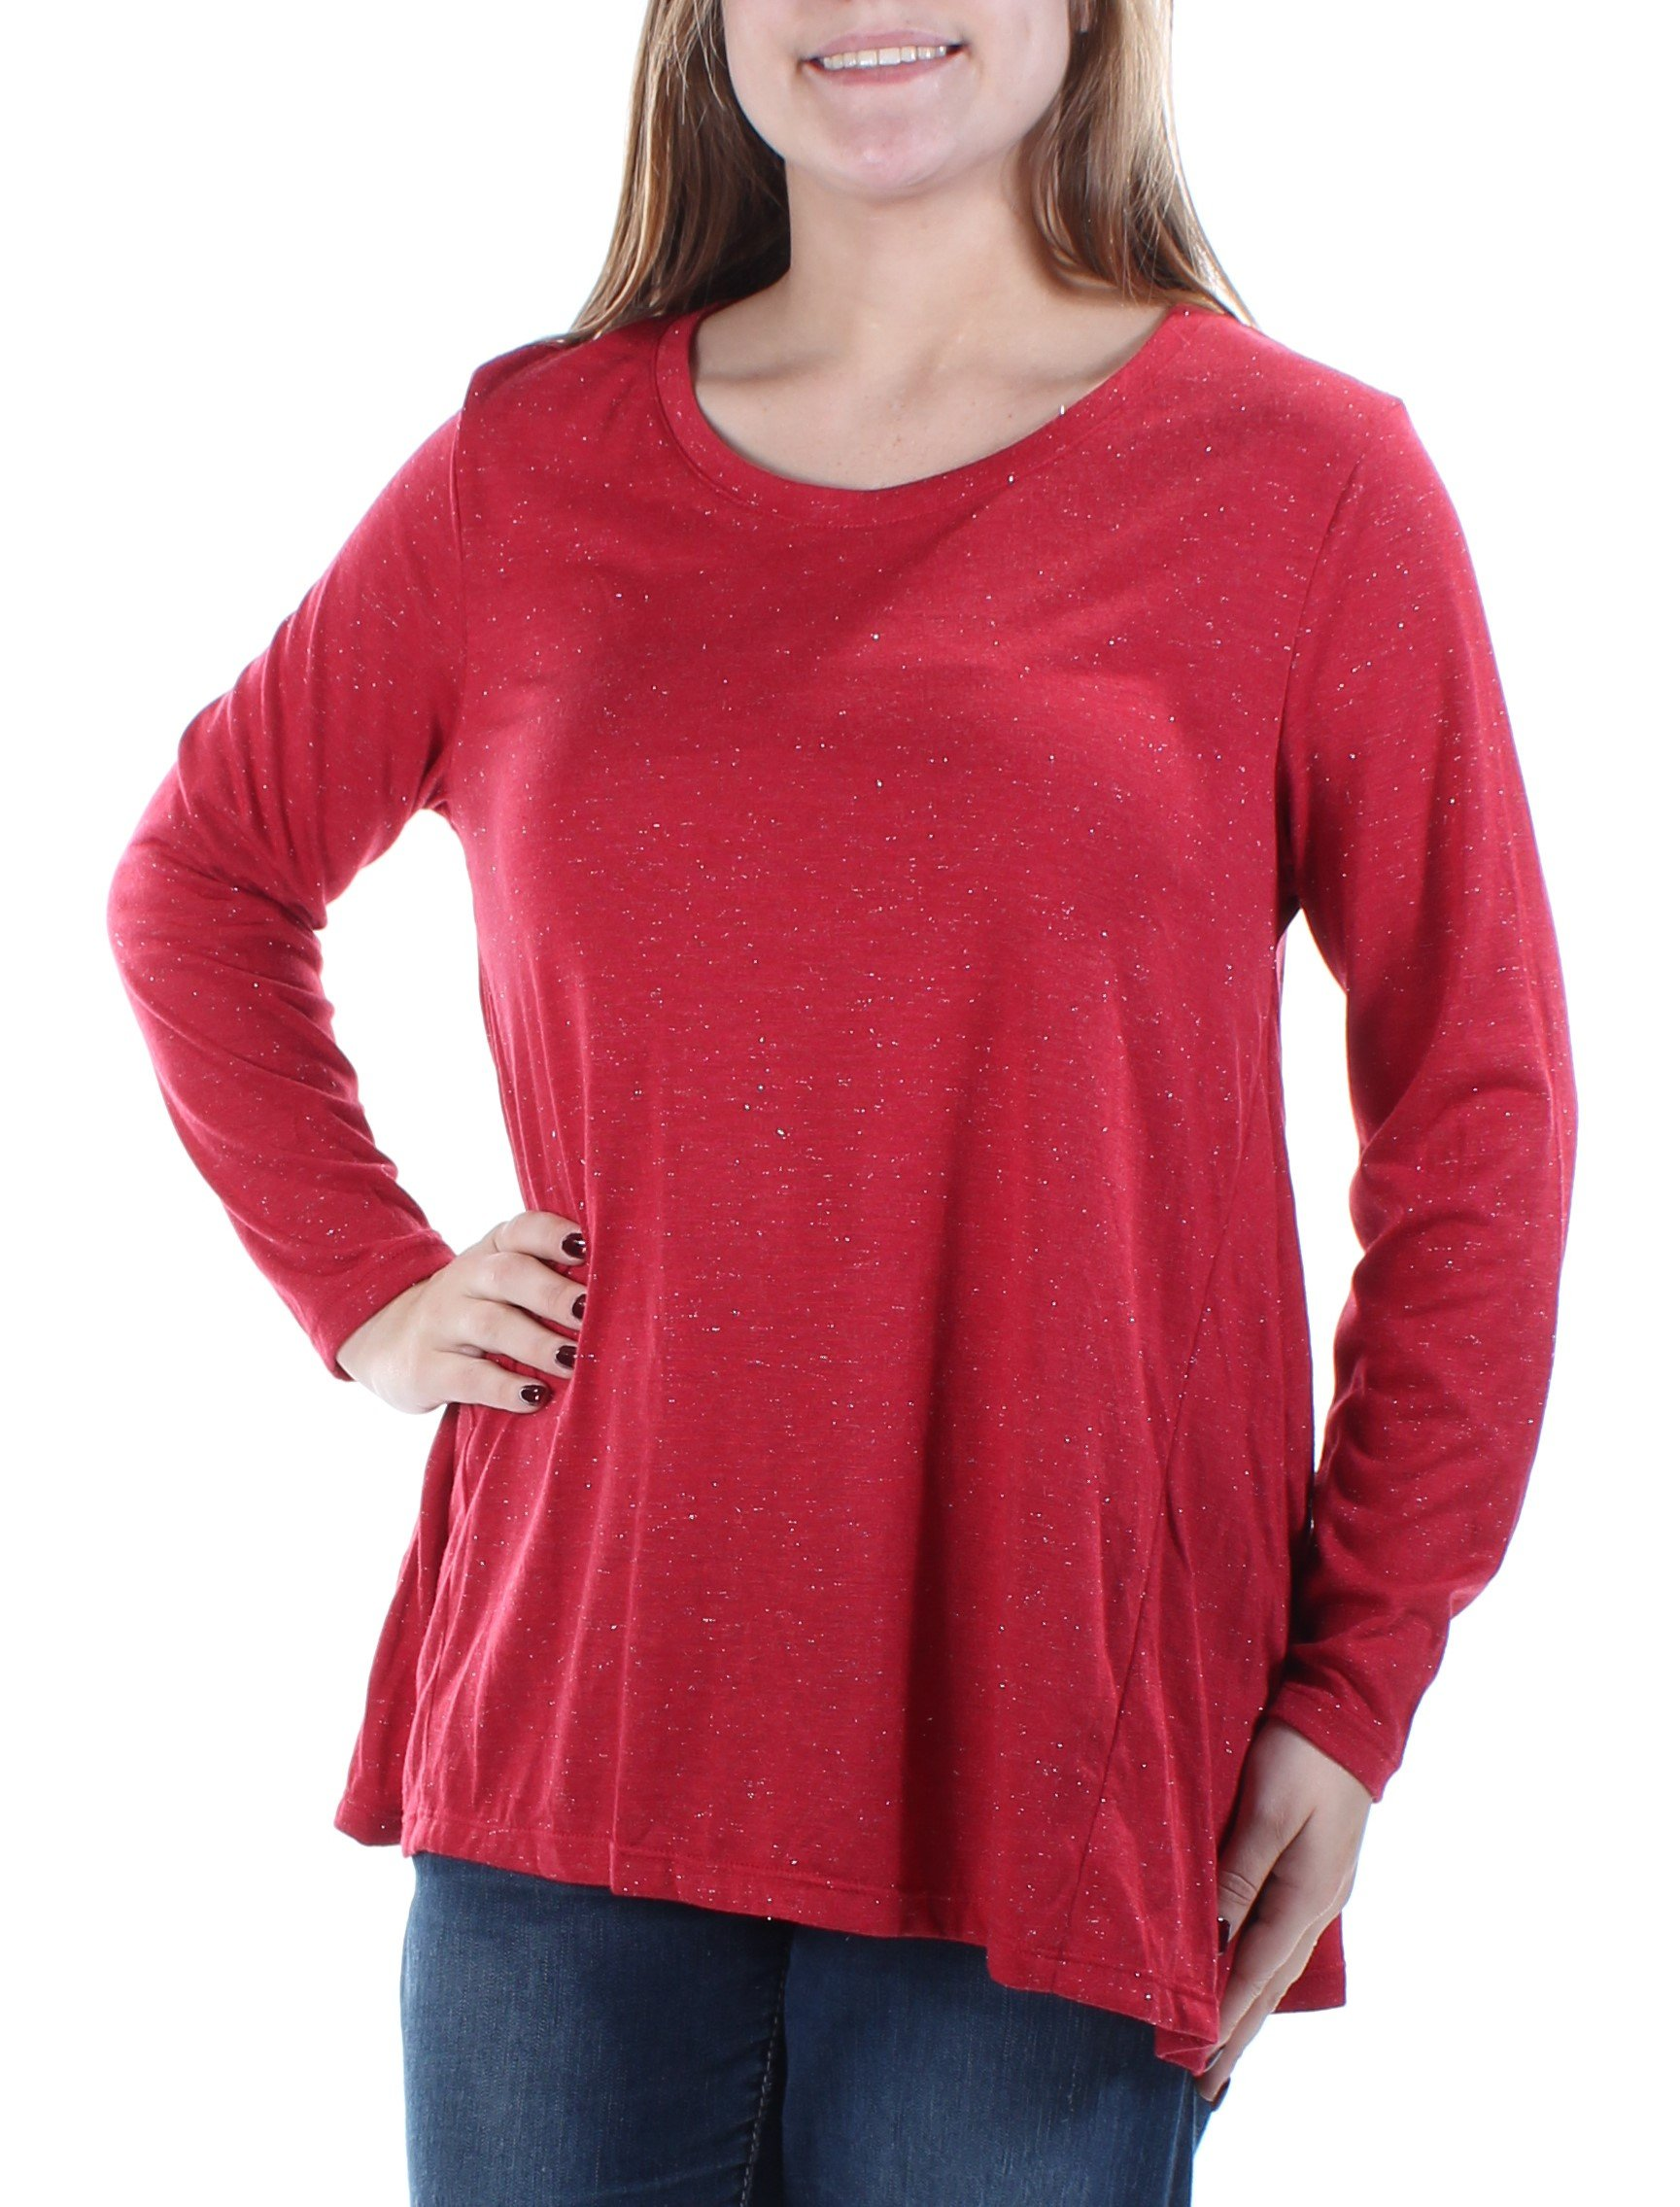 Style & Co. Womens Petites Metallic Knit Pullover Top Red PM